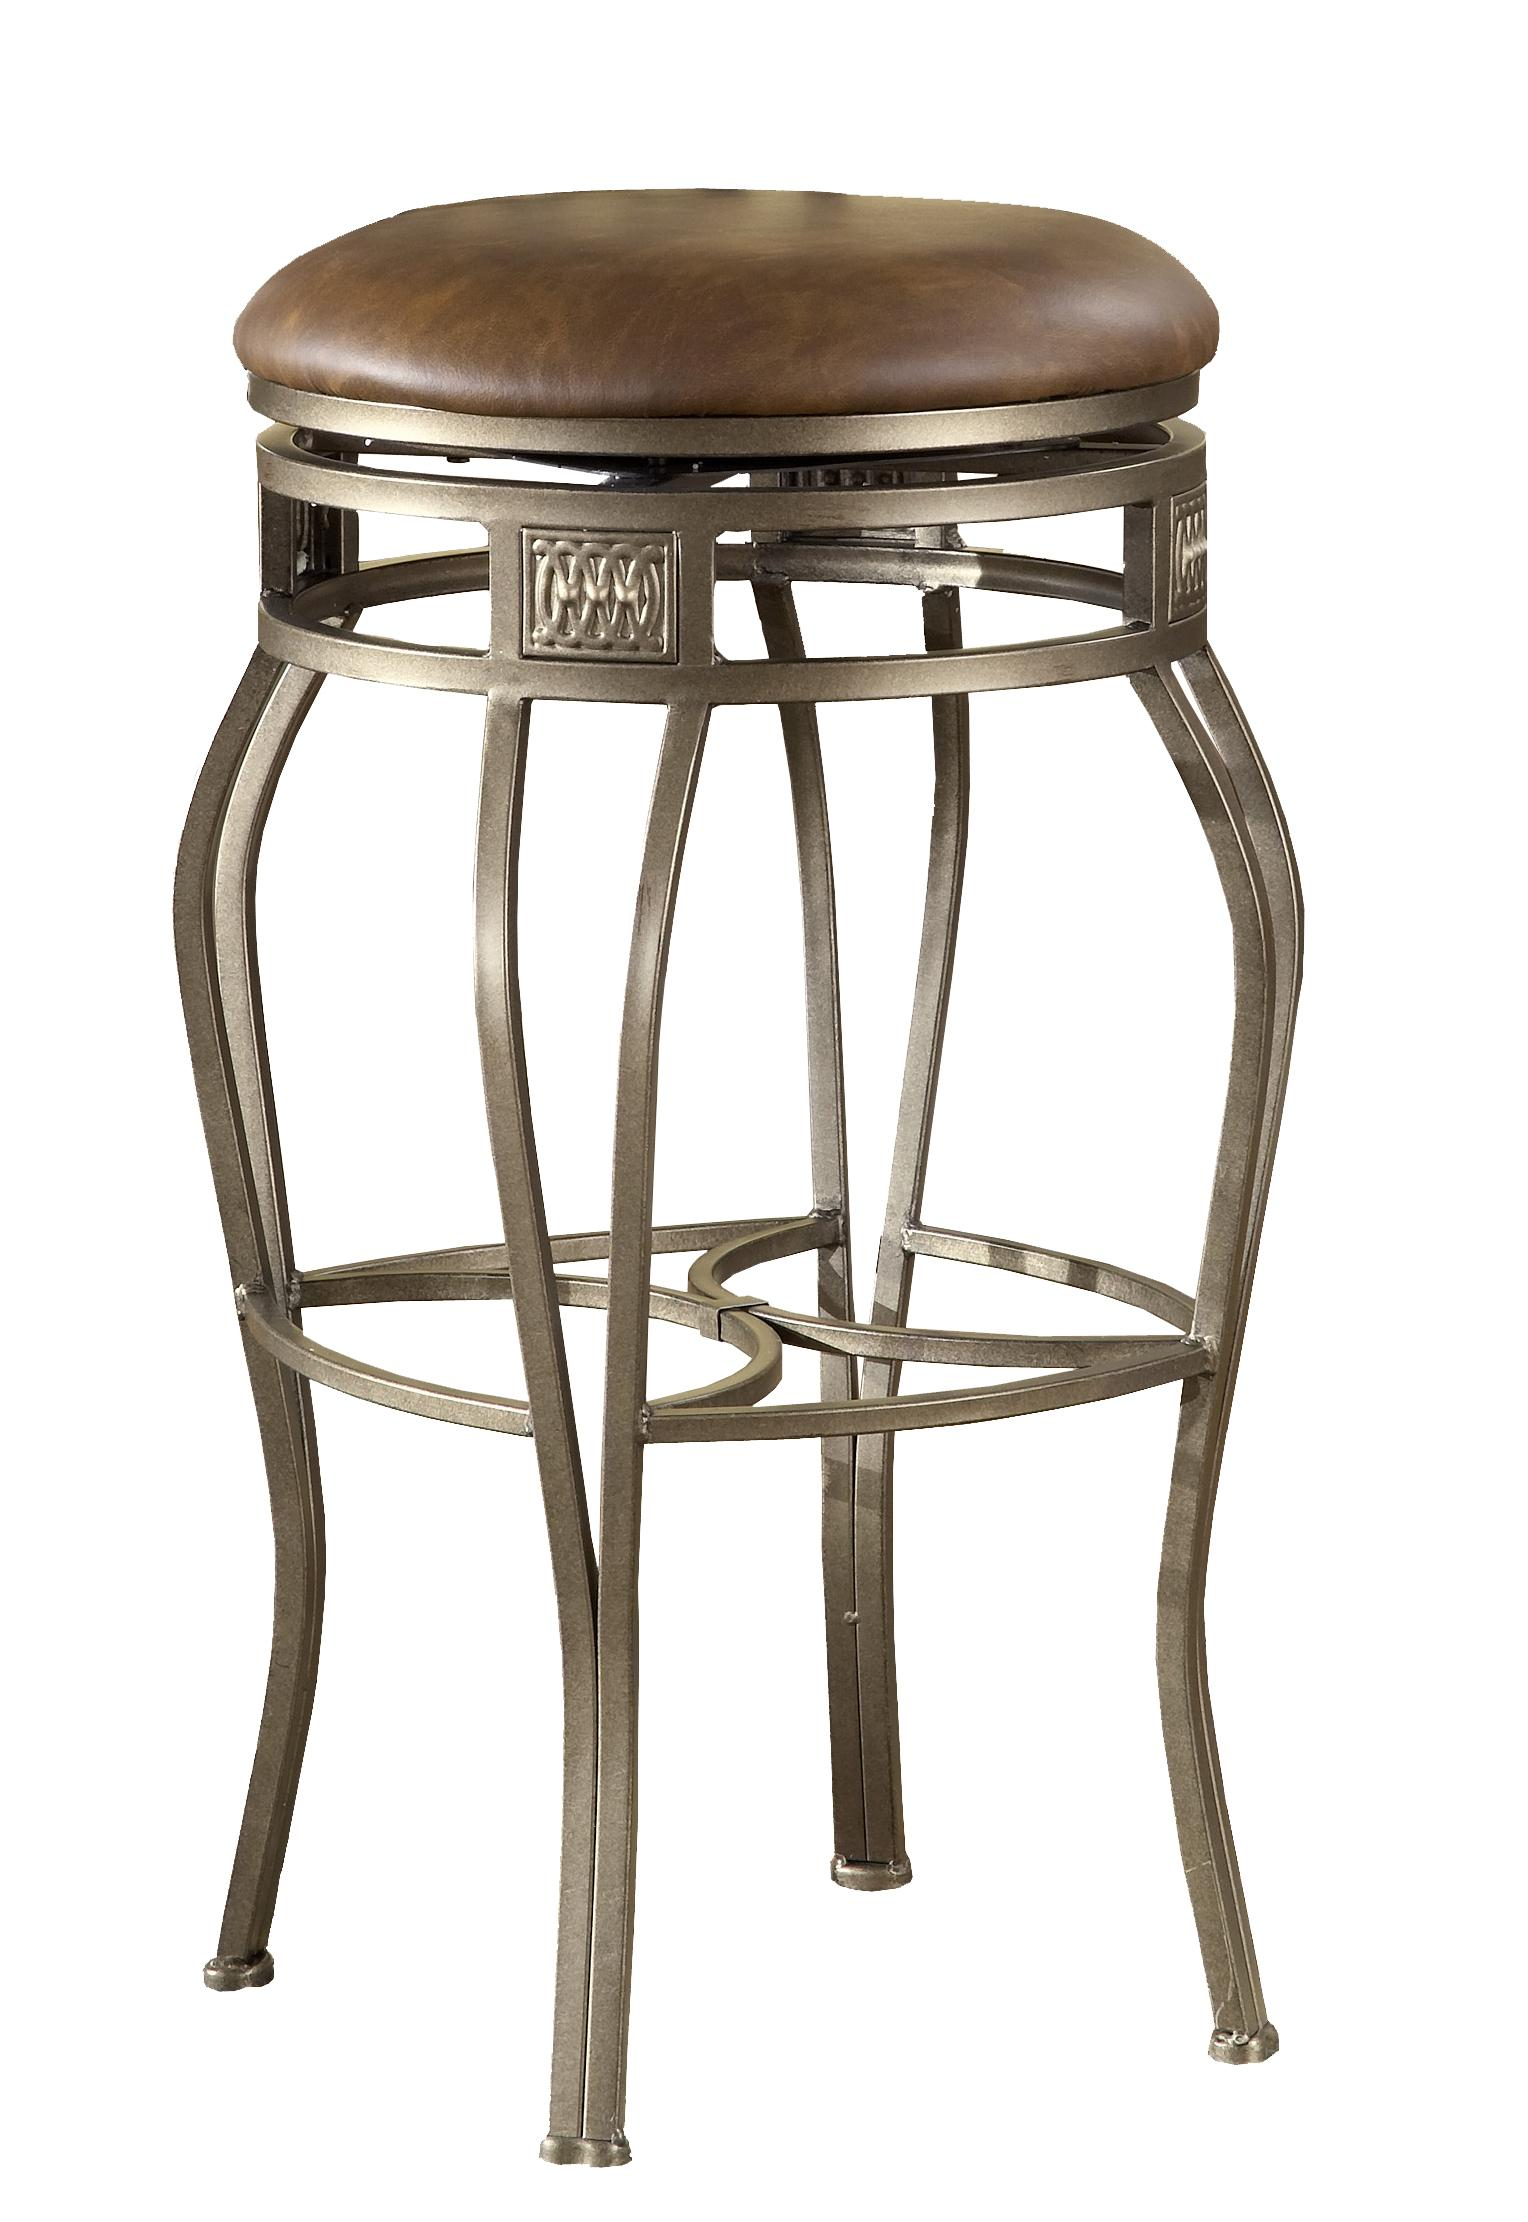 Hillsdale Backless Bar Stools 26 Backless Montello Swivel Counter Stool Boulevard Home - Backless Stools